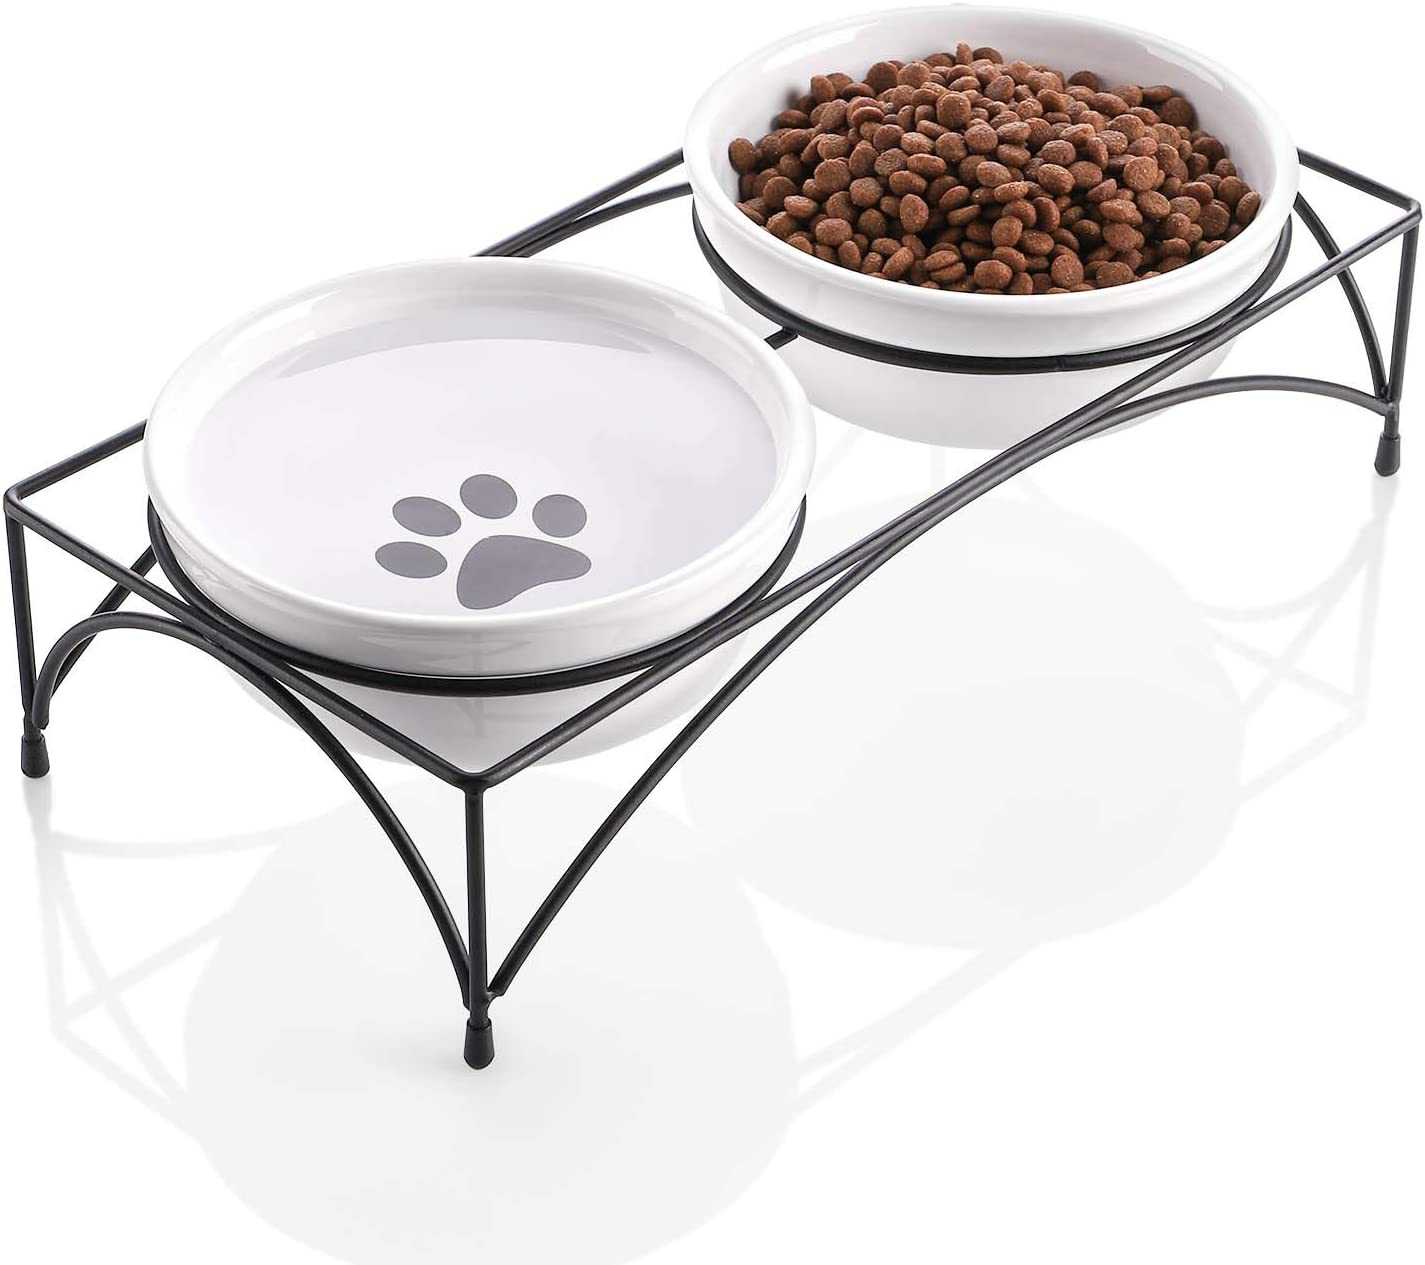 Y YHY Cat Food Bowls, Elevated Cat Bowls with Stand, Protect Cat's Spine, Raised Cat Bowls for Food and Water, Ceramic Pet Feeding Bowls, Whisker Fatigue, 12 Ounces, Dishwasher Safe